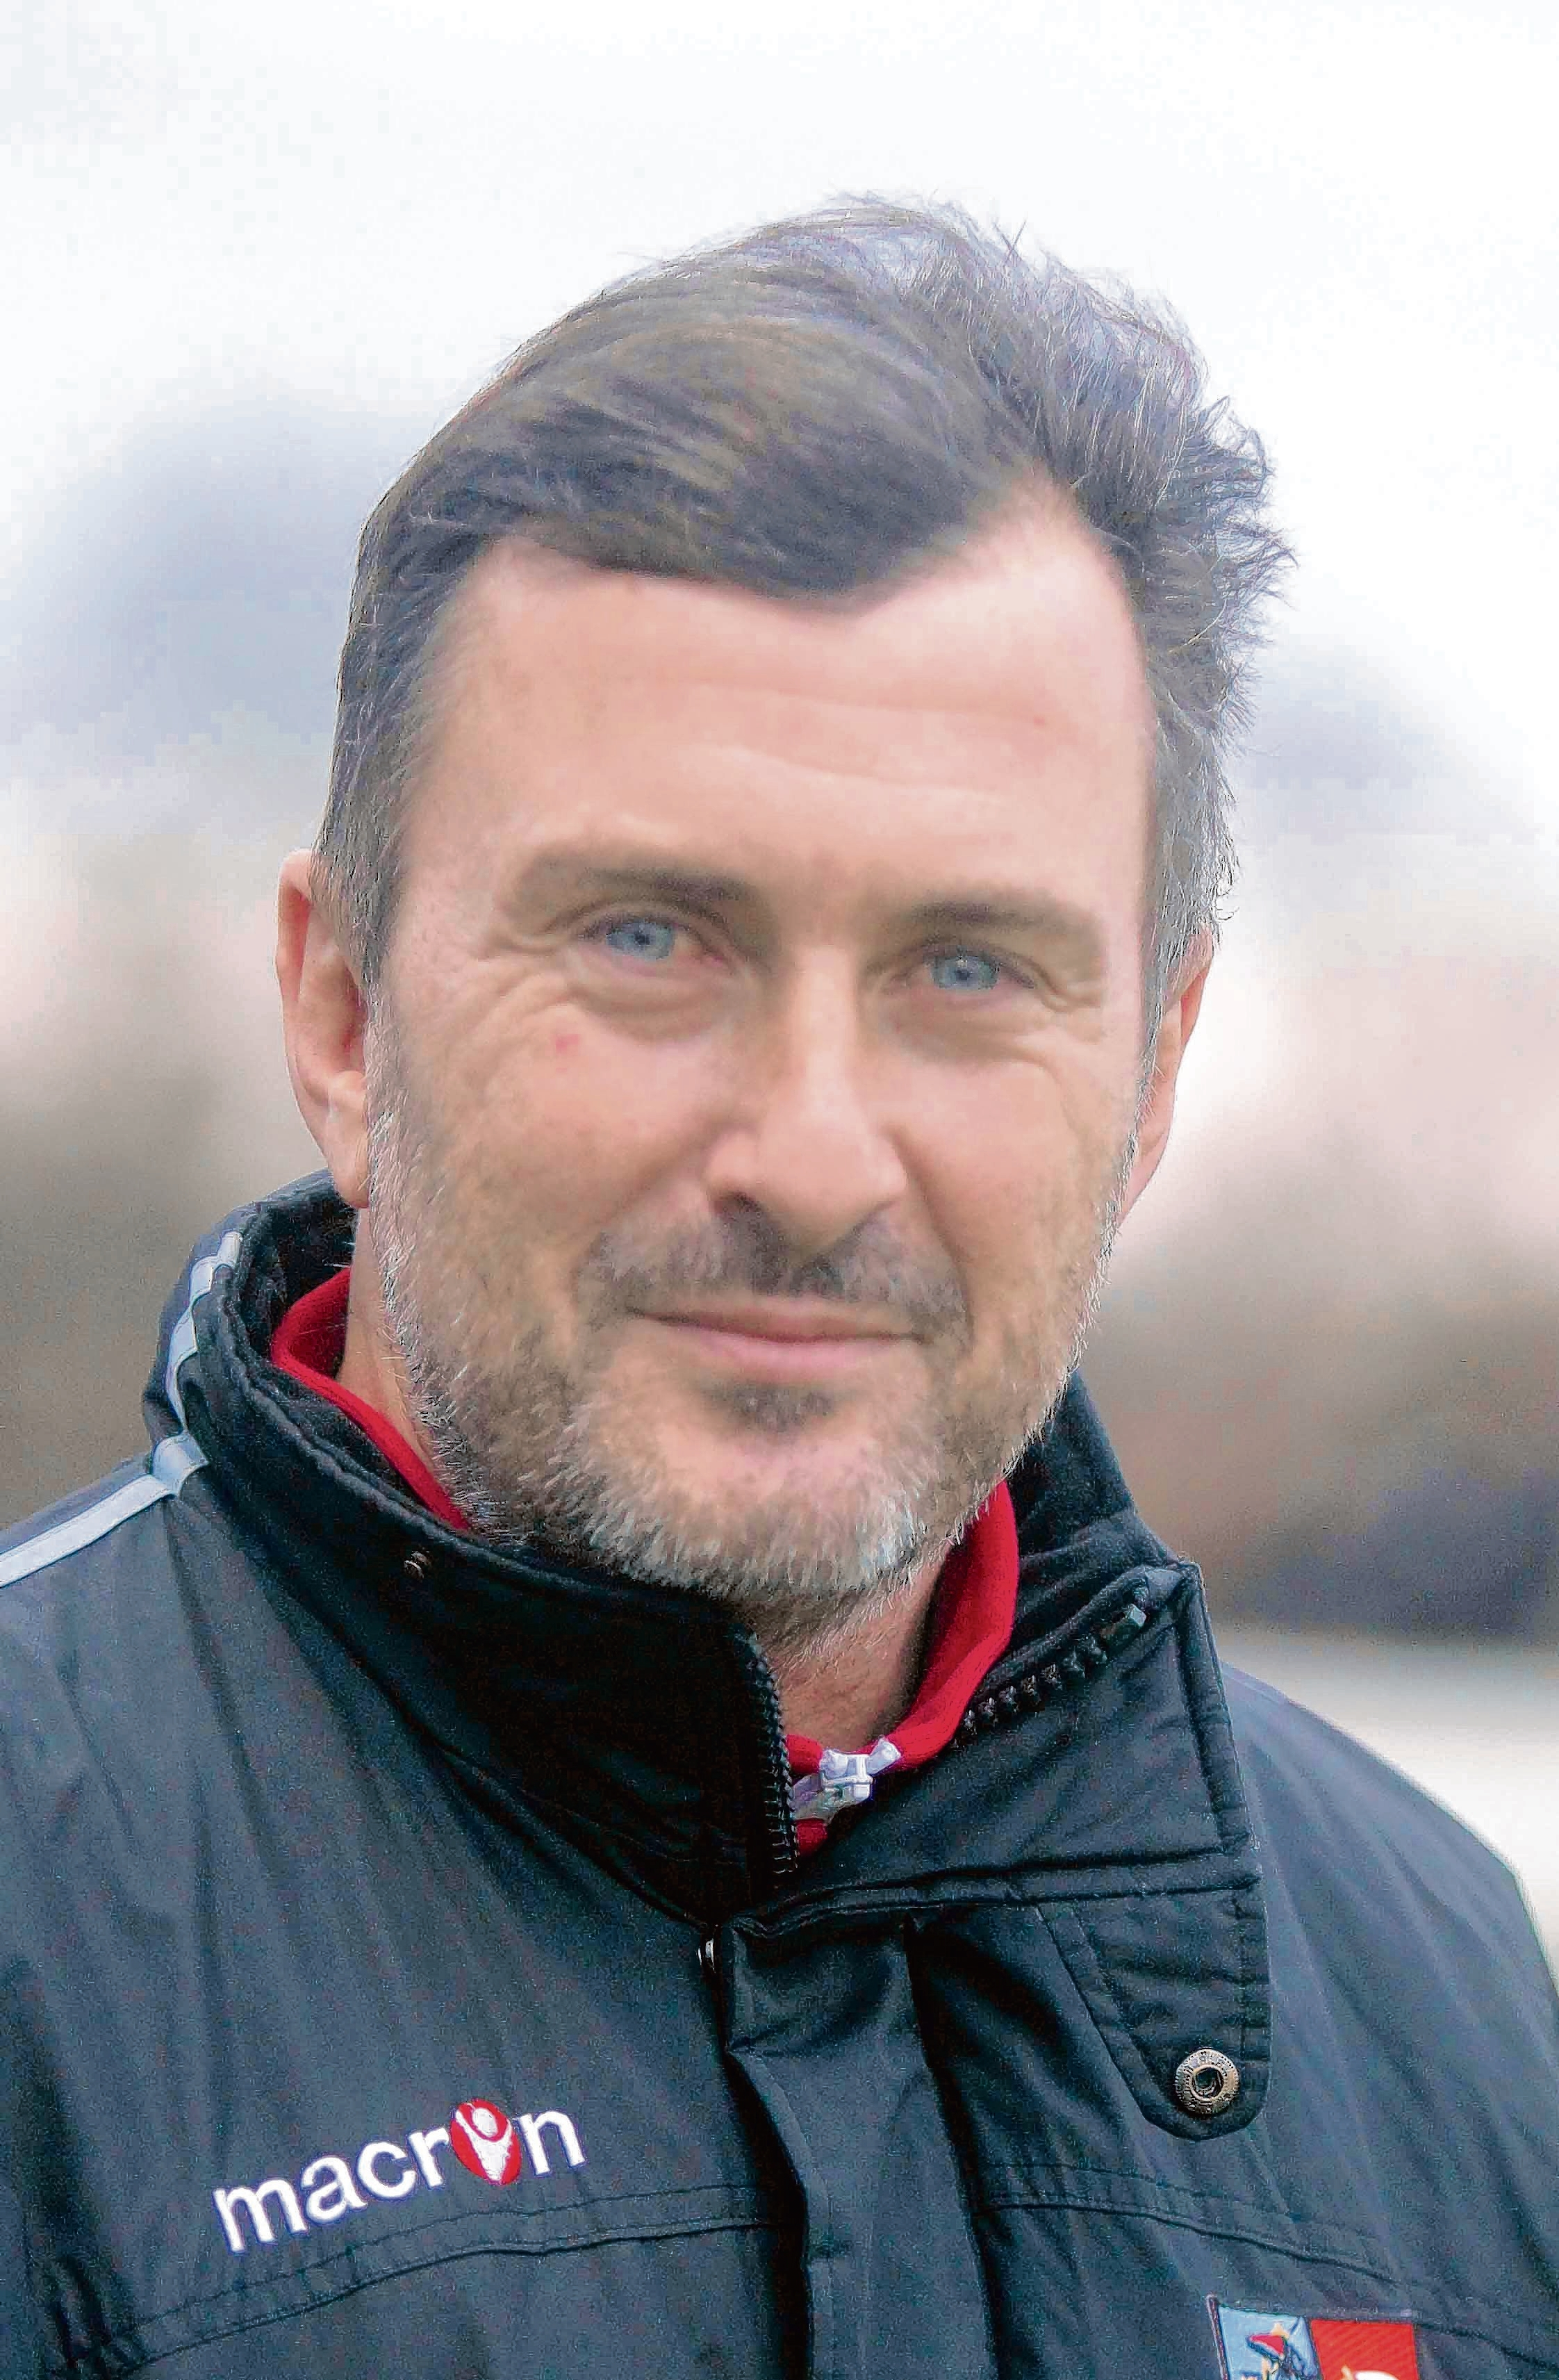 Delight: Steve Ball is happy to gain first win in charge of Maldon and Tiptree in derby game against Heybridge Swifts